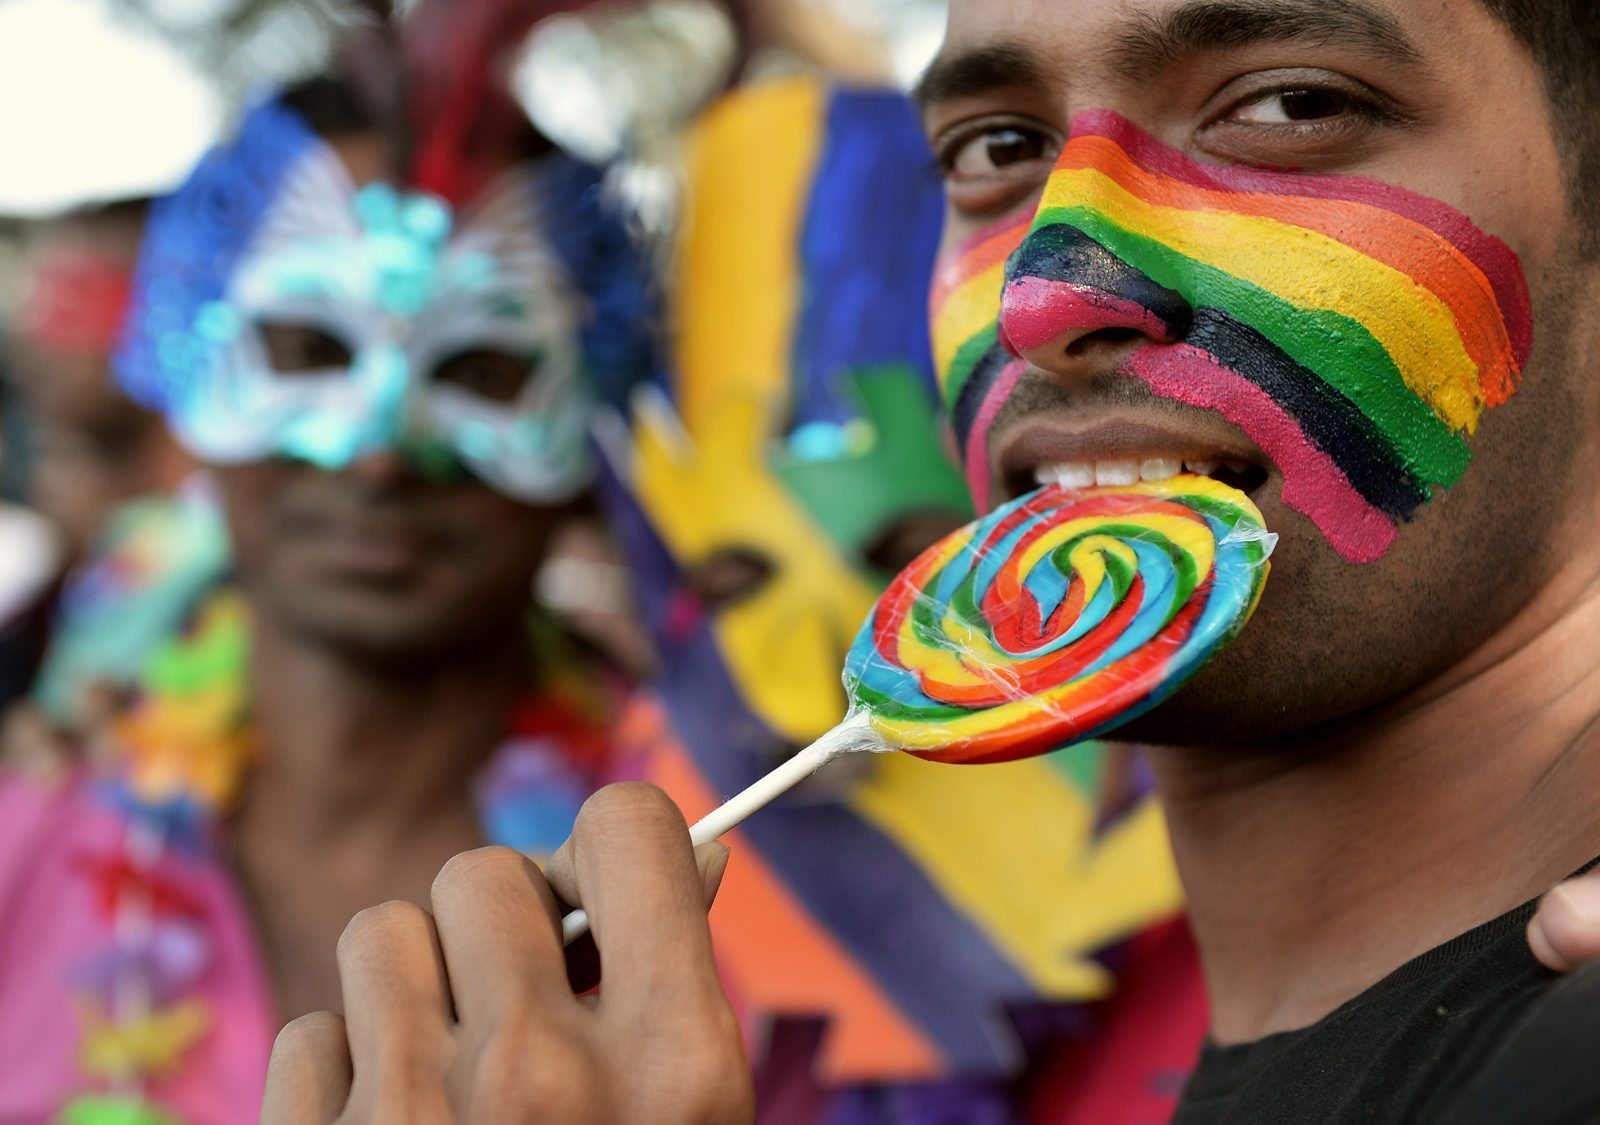 Decriminalise homosexuality in christianity